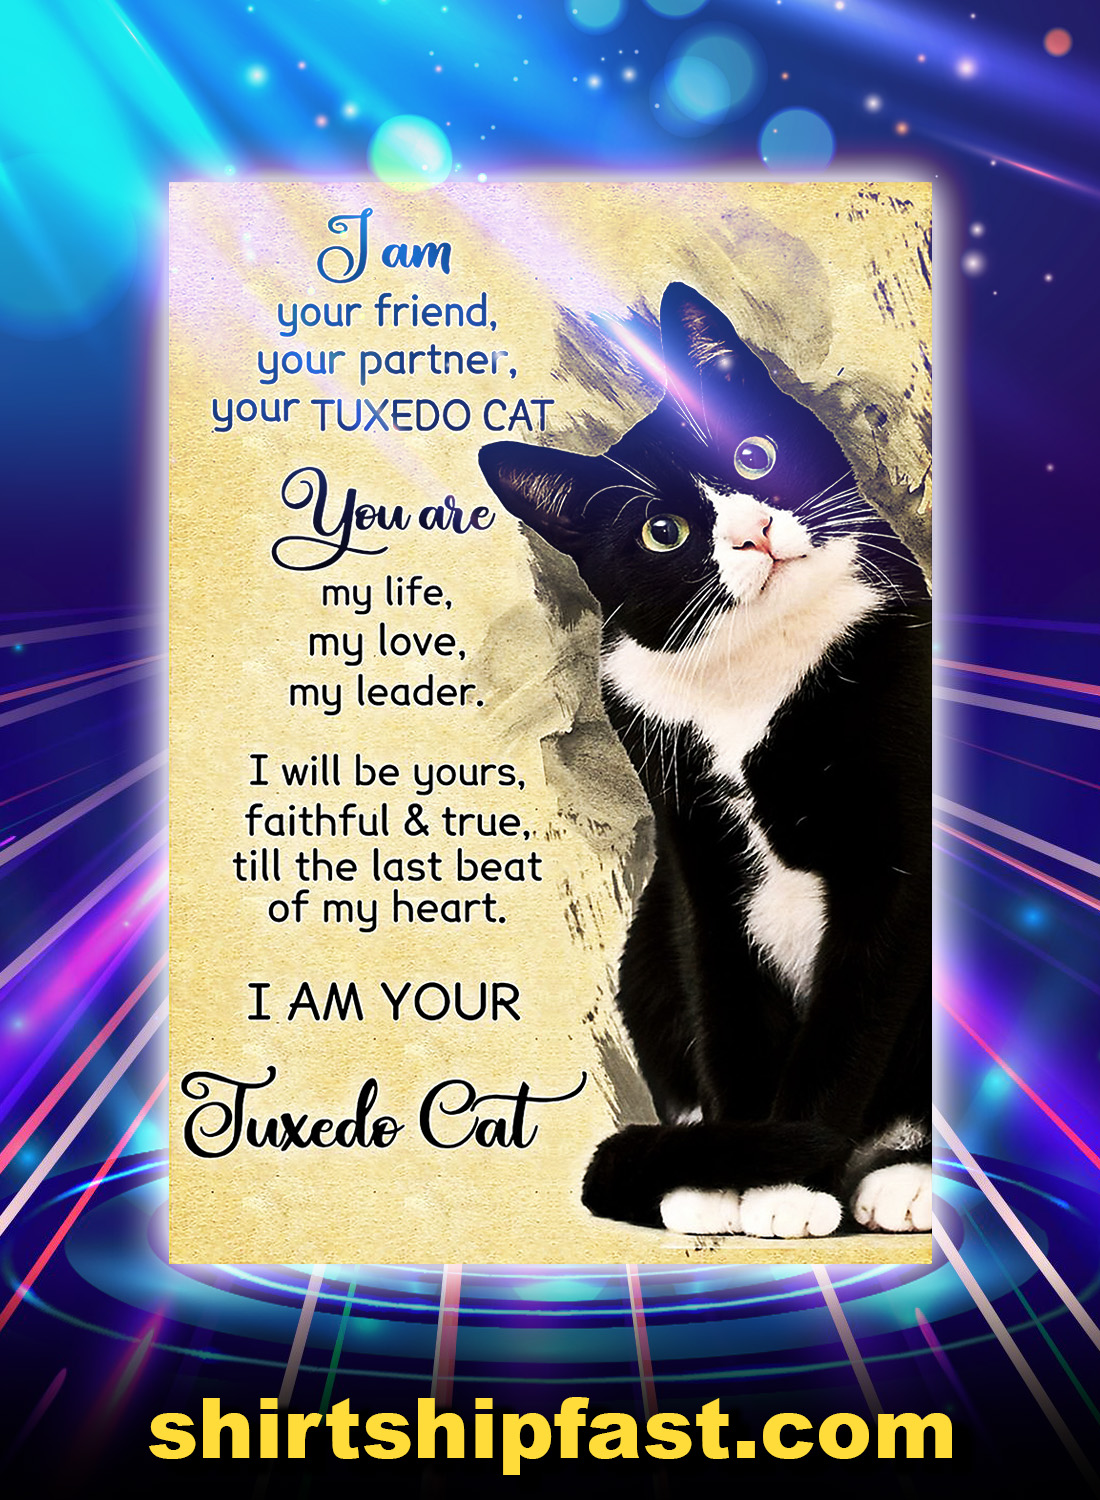 I am your tuxedo cat poster - A4